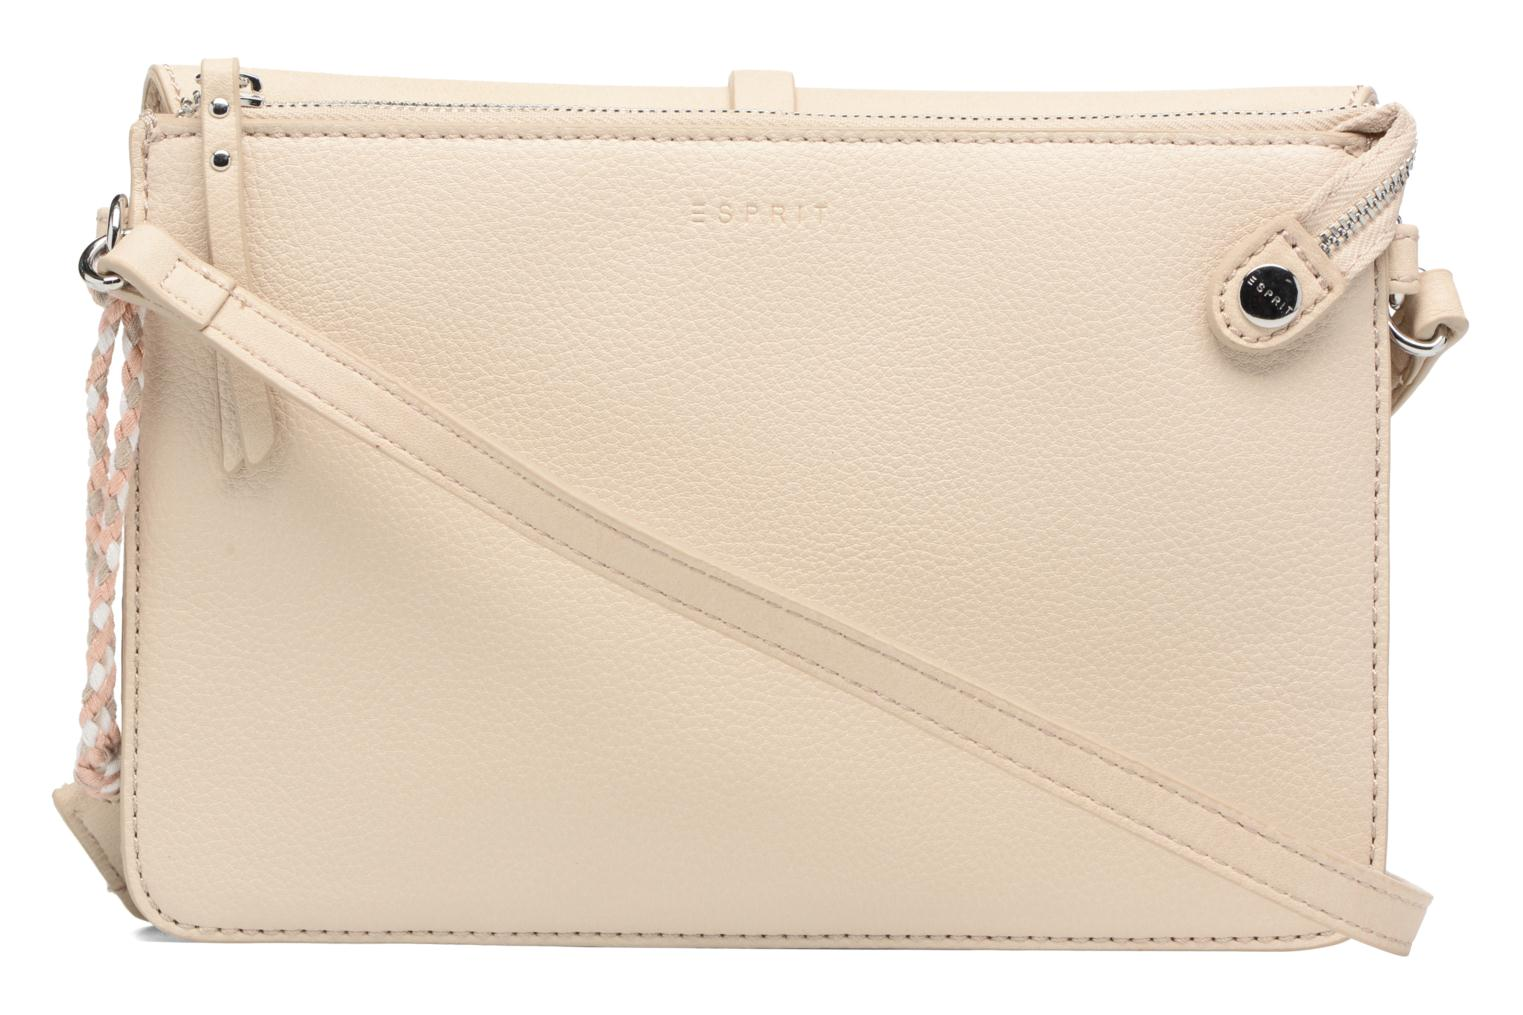 Handbags Esprit Tracy Shoulderbag Beige front view